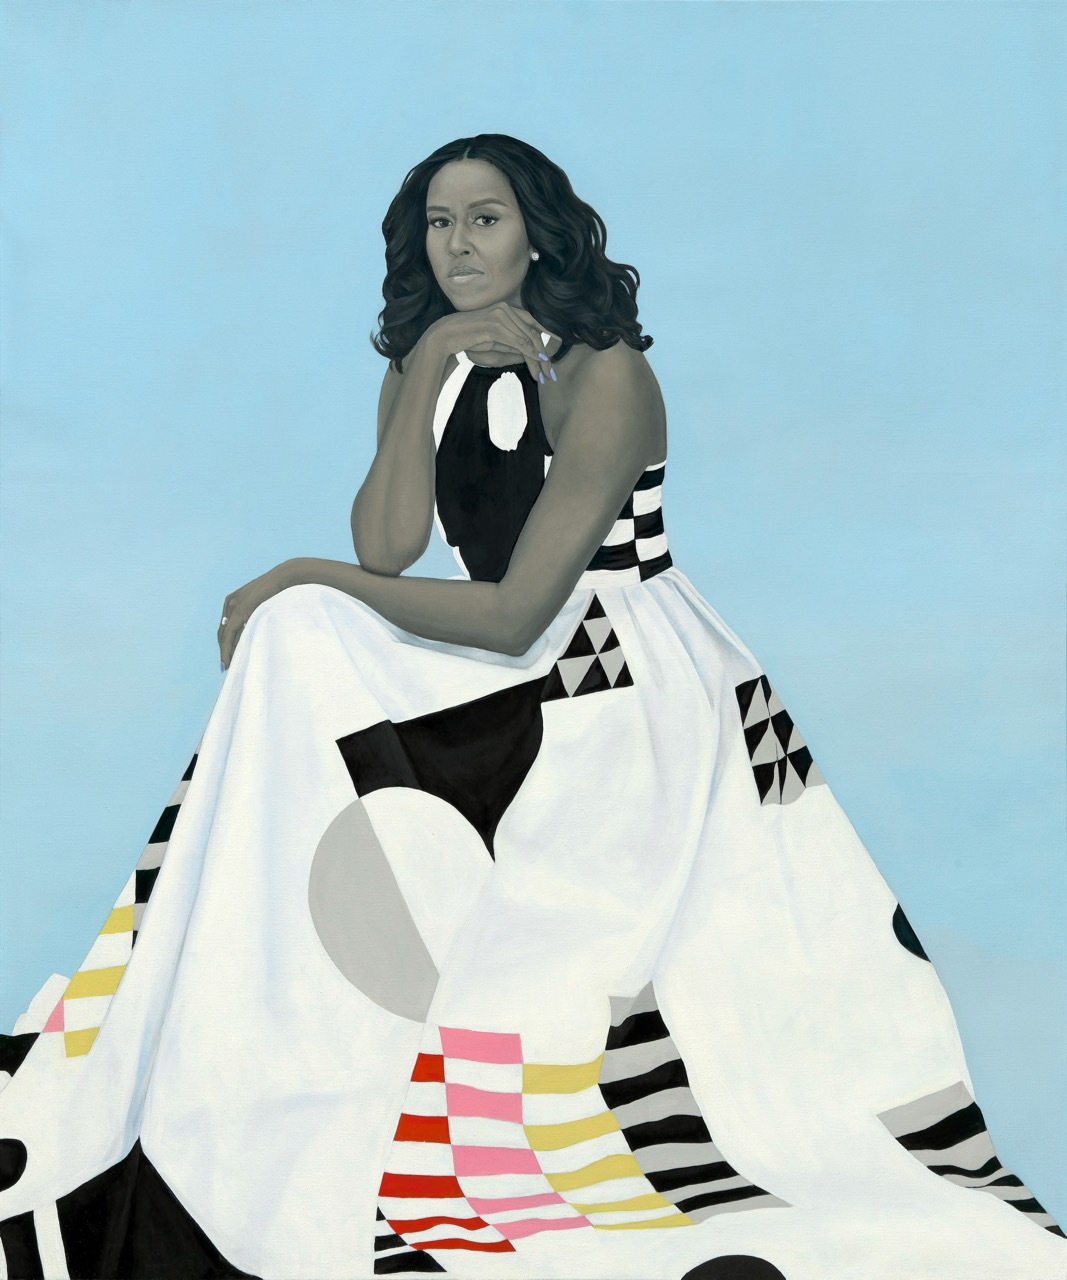 StFelix-Amy-Sherald-Portrait-Michelle-Obama (1)